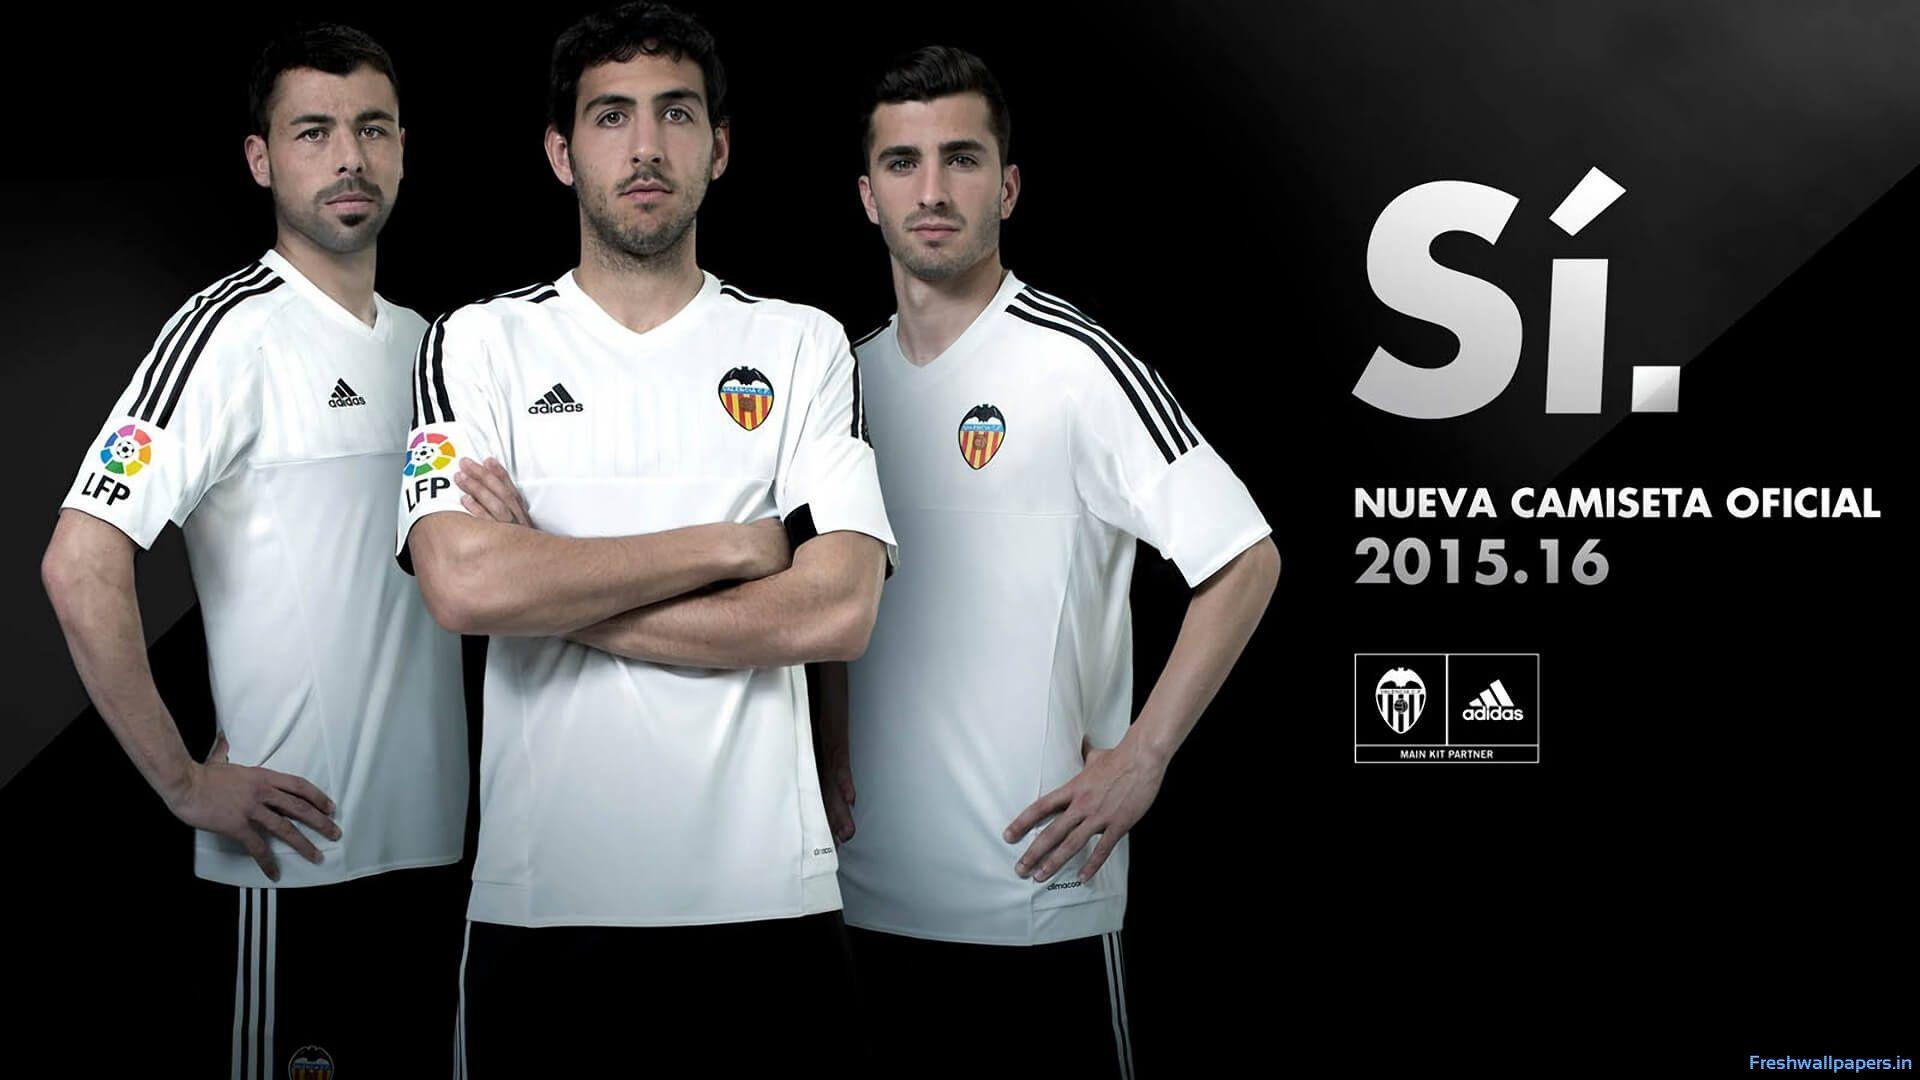 Valencia CF 2015-2016 Adidas Home Kit wallpapers